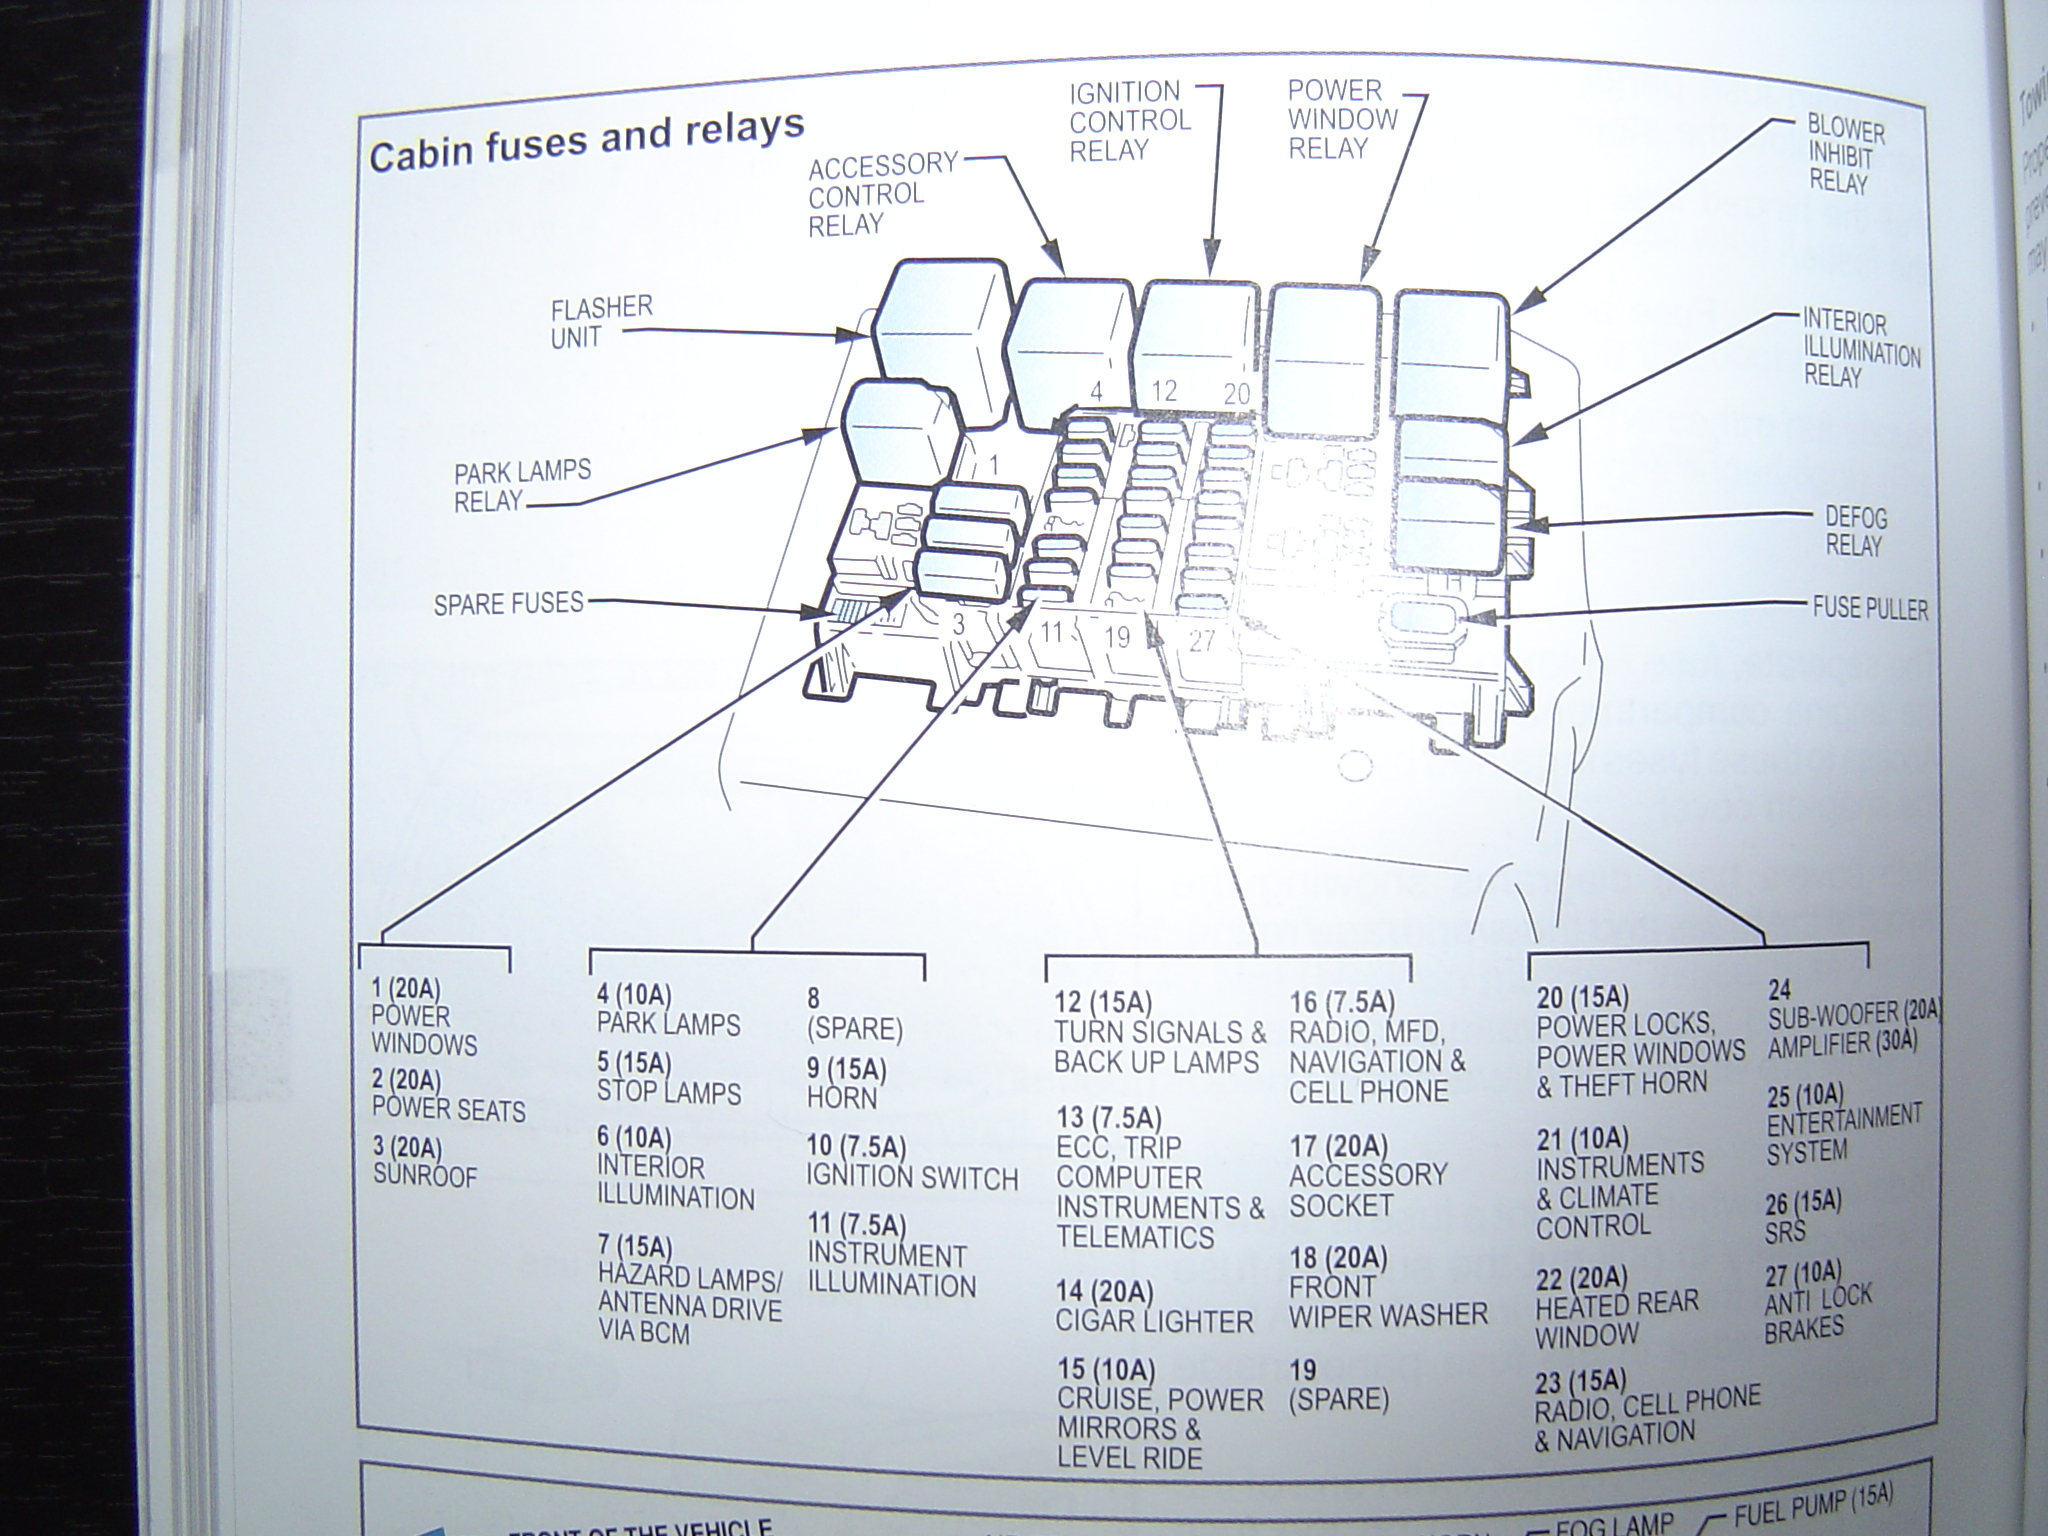 VY_CABIN_FUSEBOX vy commodore wiring diagram vy commodore engine wiring diagram vy commodore power window wiring diagram at mifinder.co